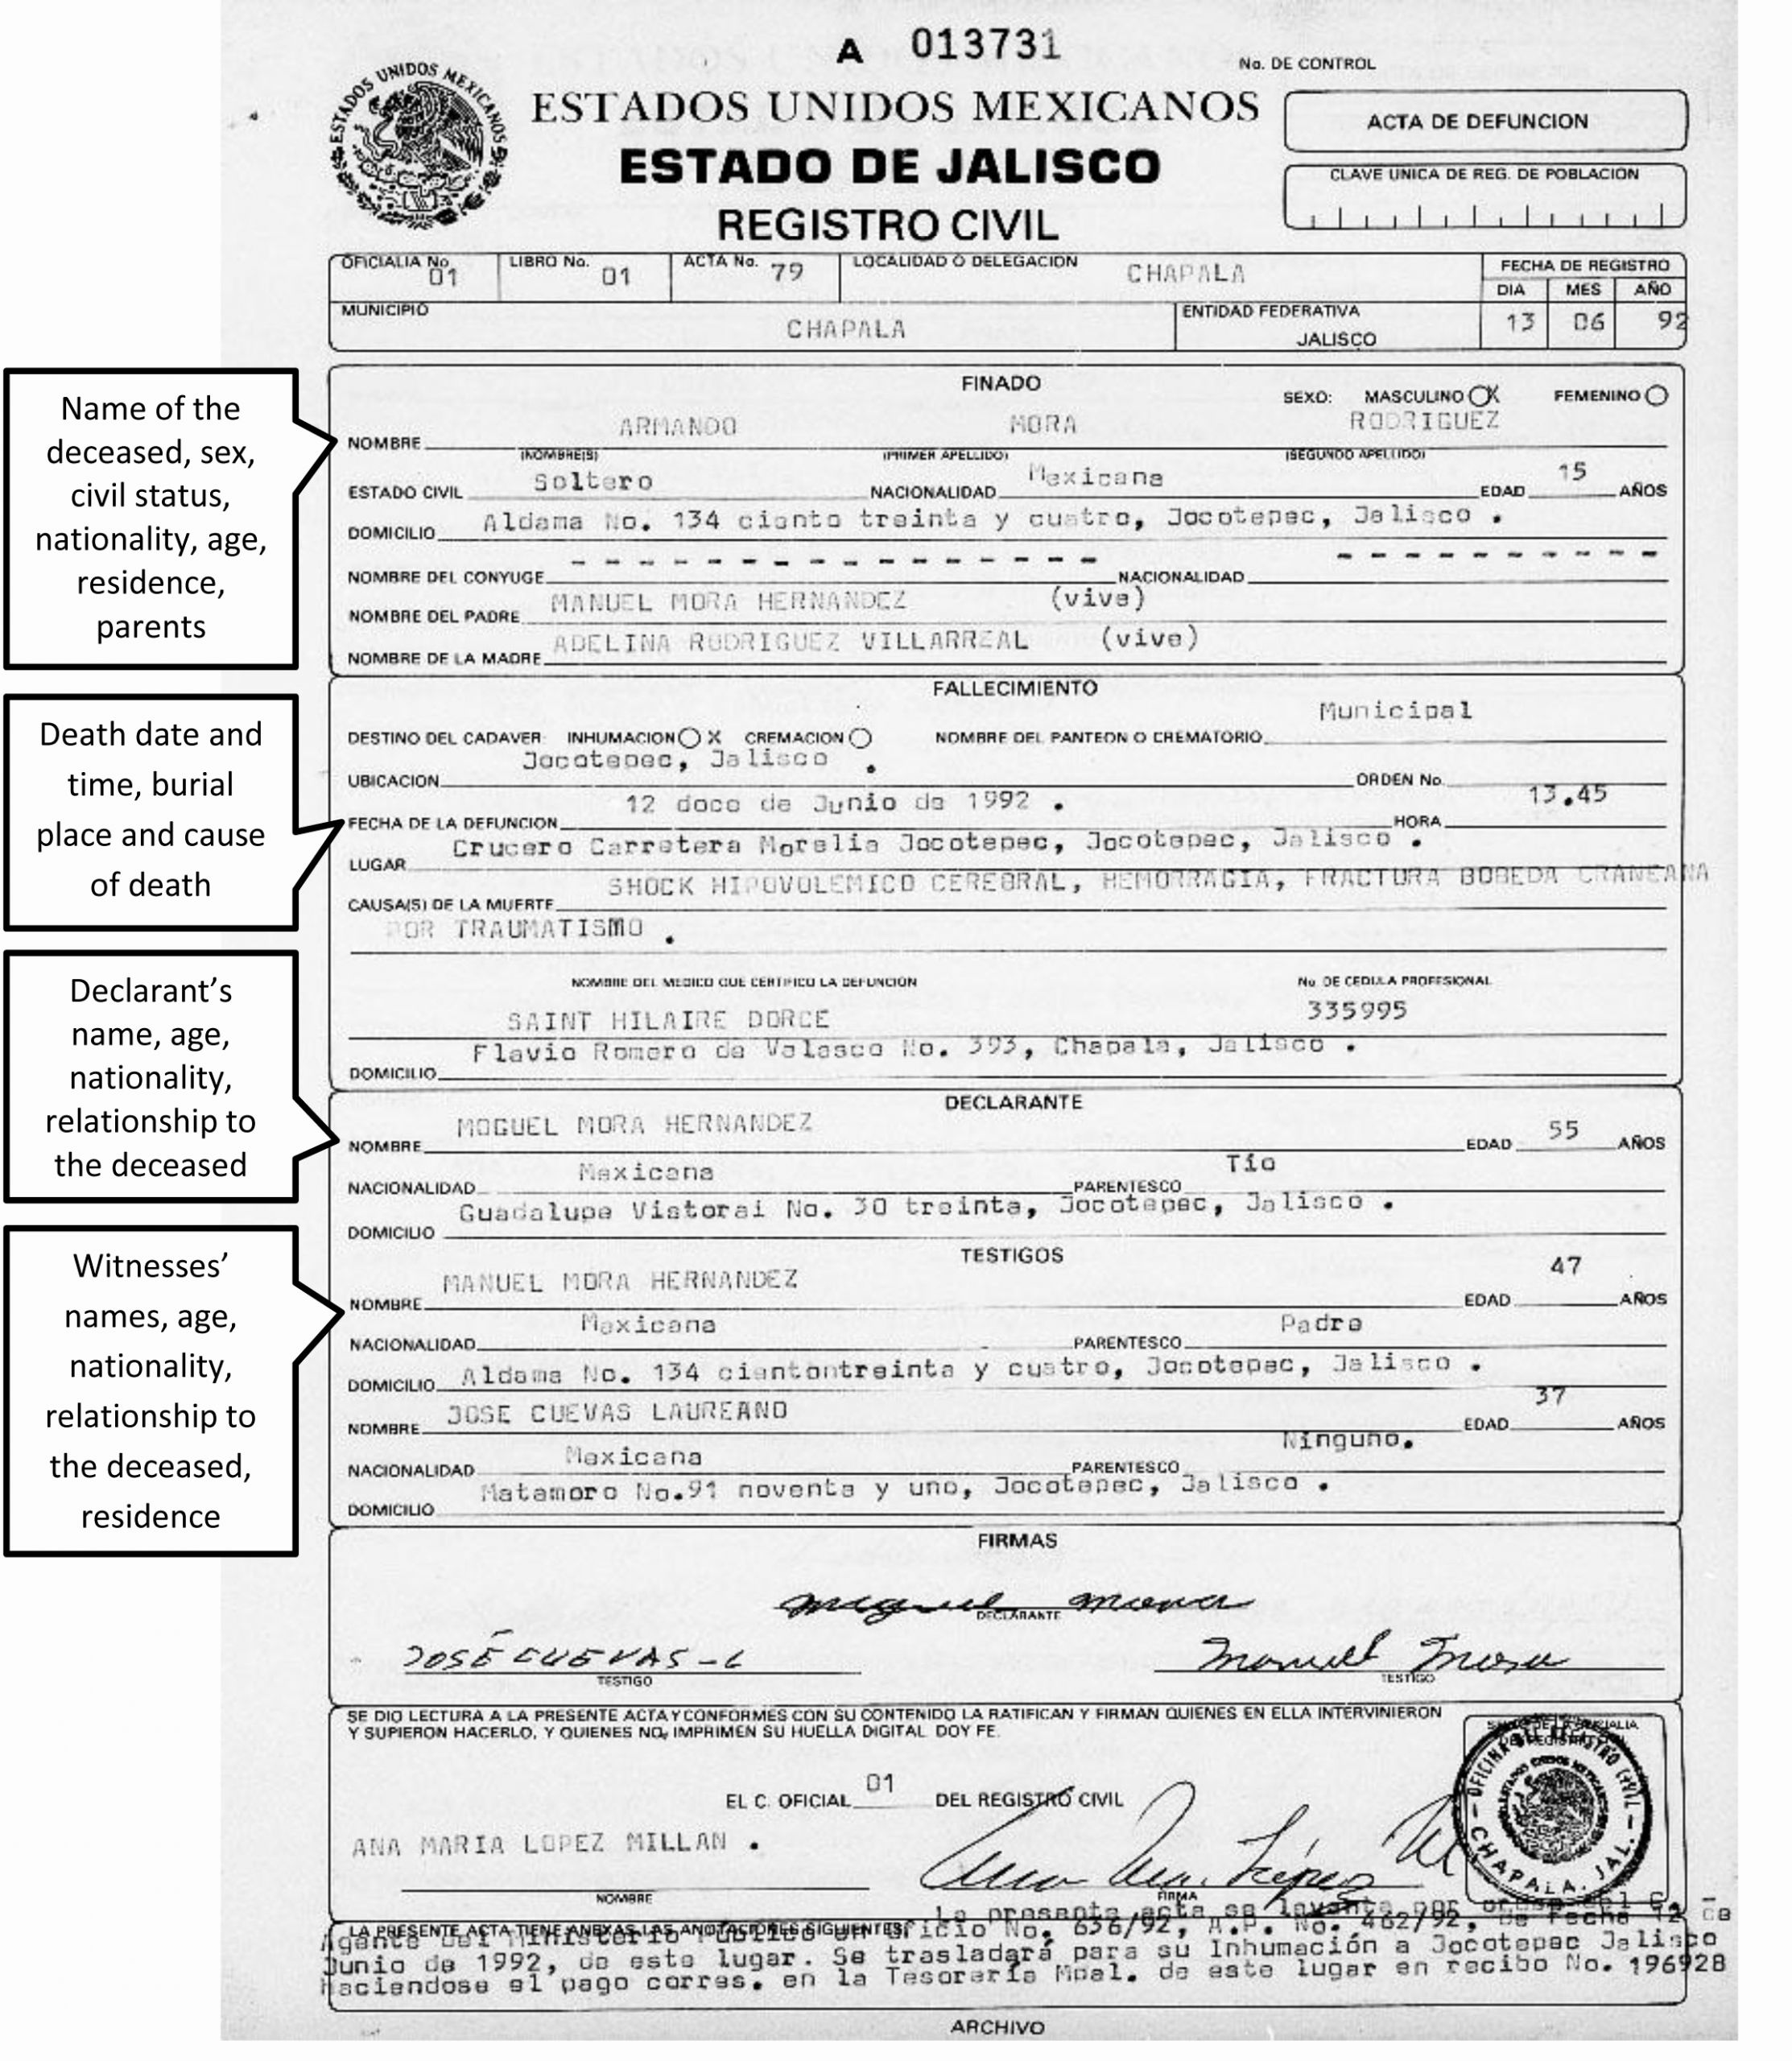 Marriage Certificate Translation From Spanish to English Template Awesome Best S Of Mexico Birth Certificate Template Mexican